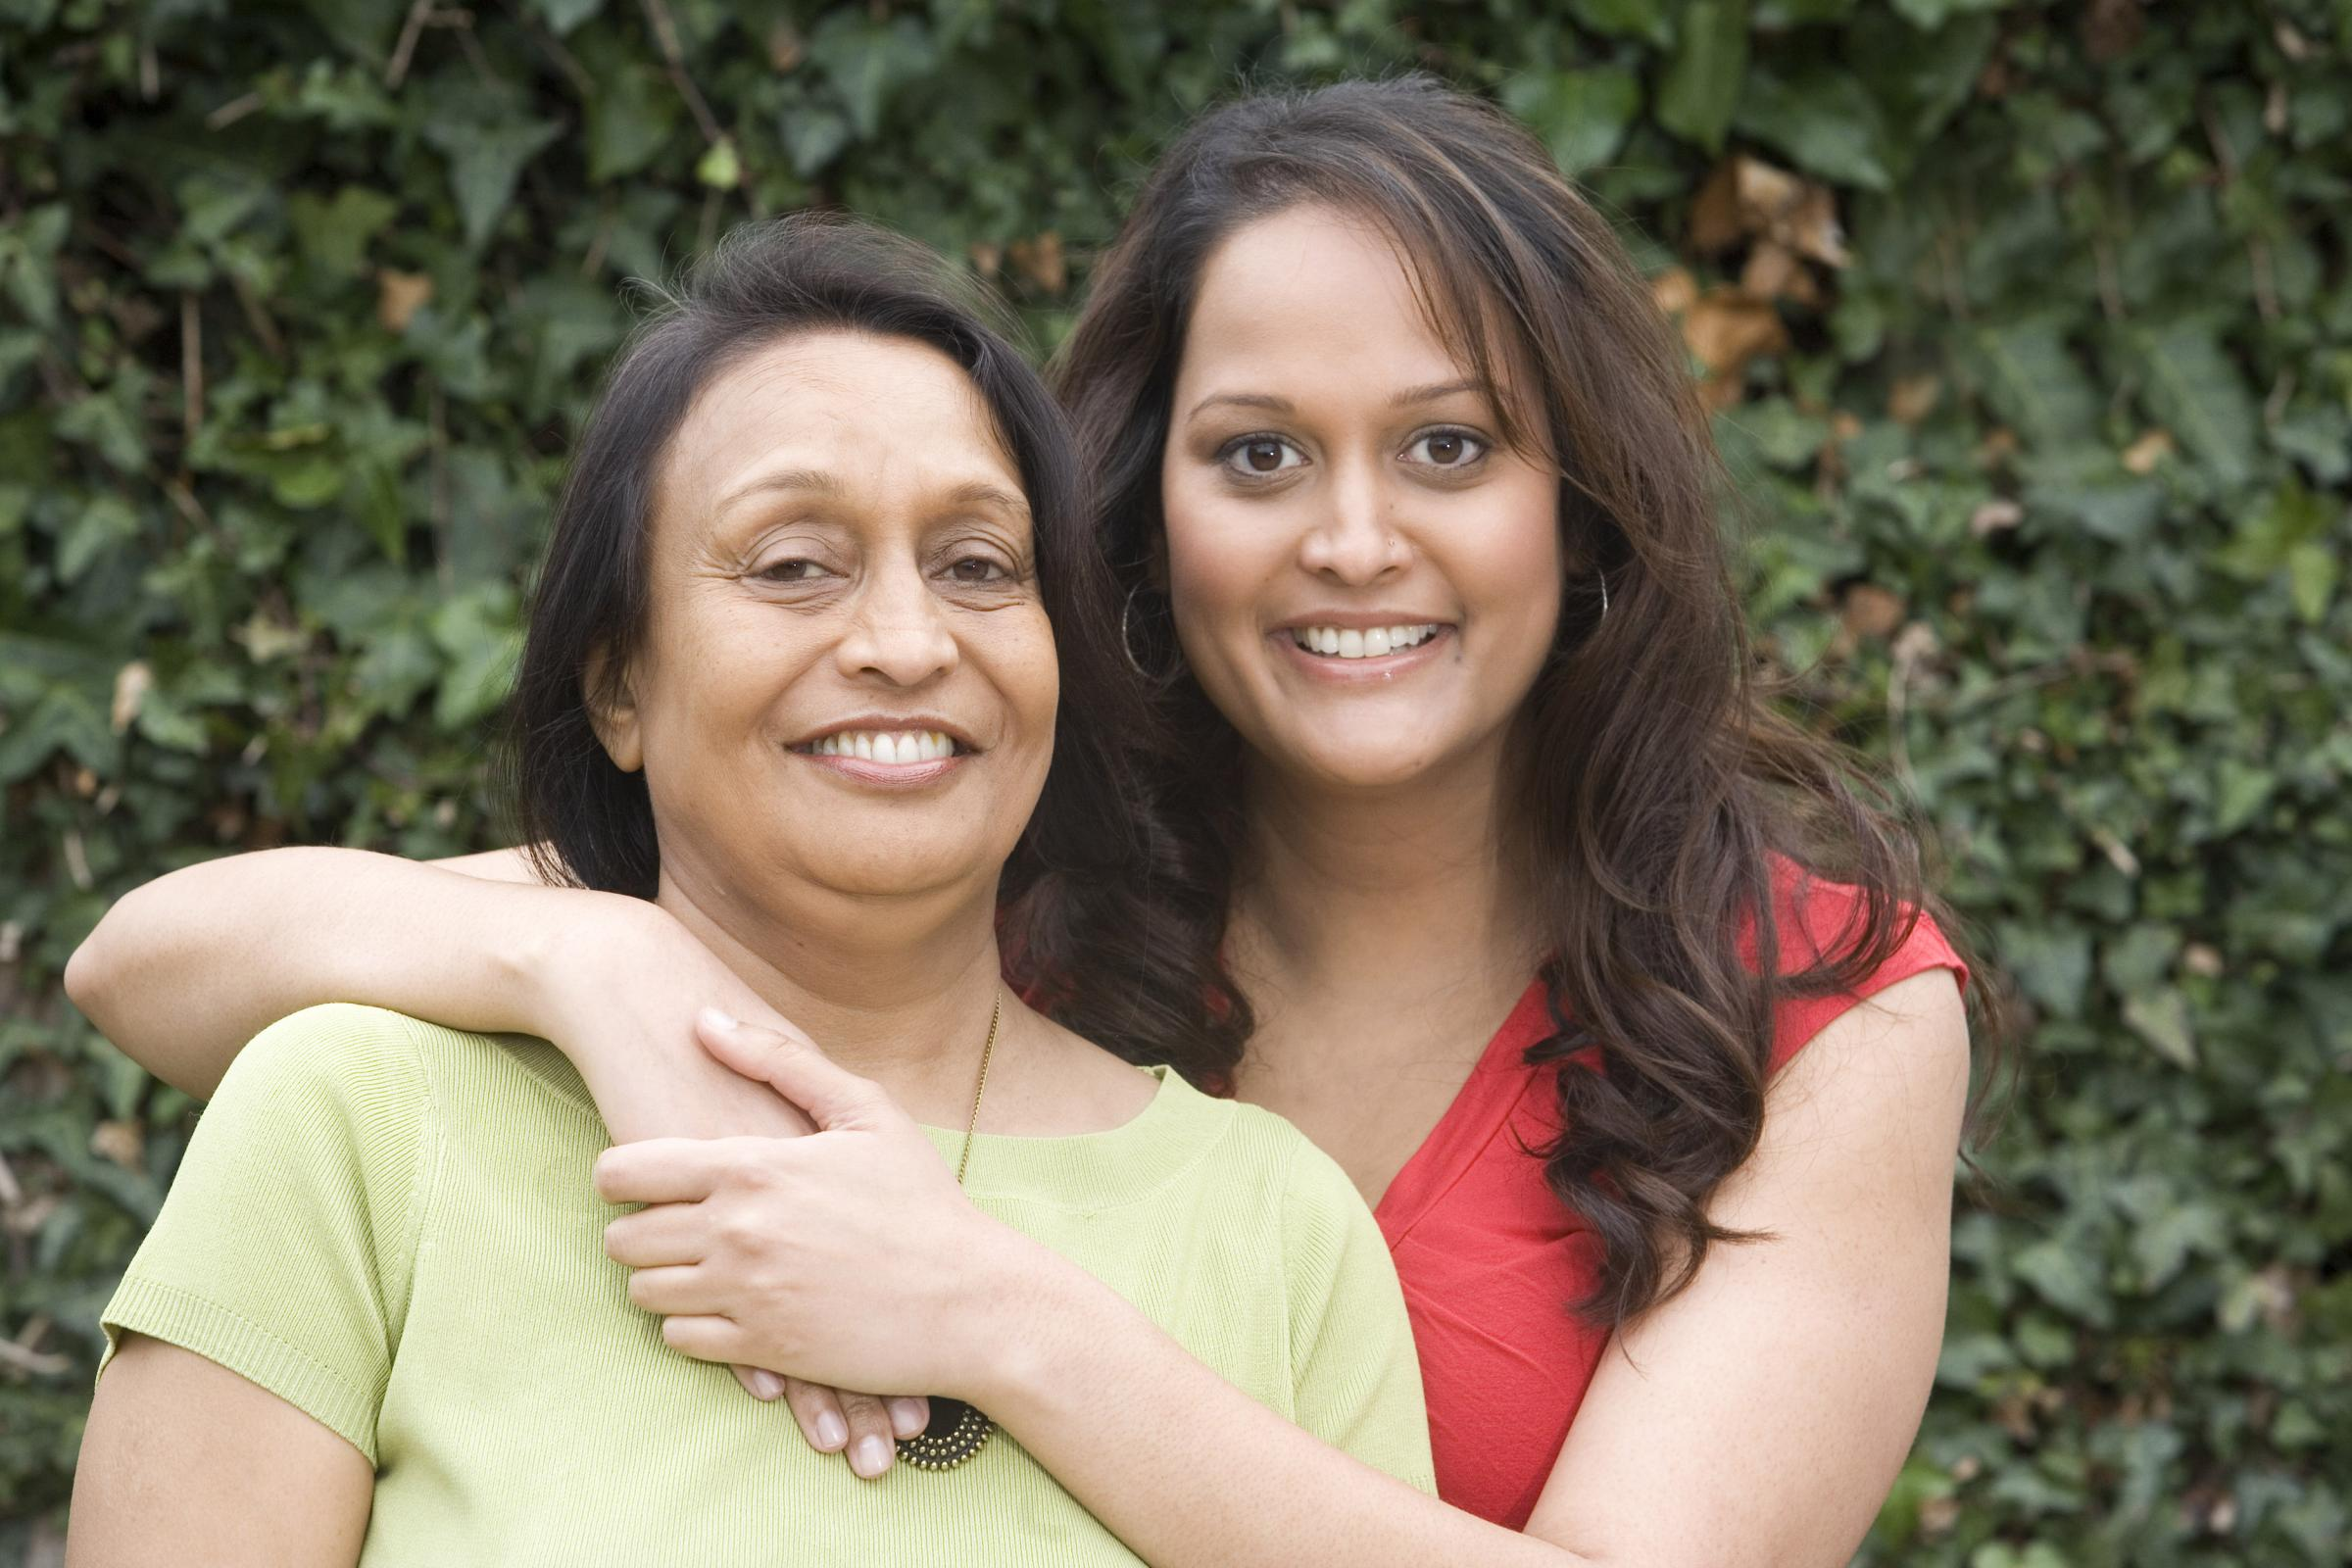 Swati Bhagat, 37, donated a kidney in 2011 to her mother Kanchan Bhagat